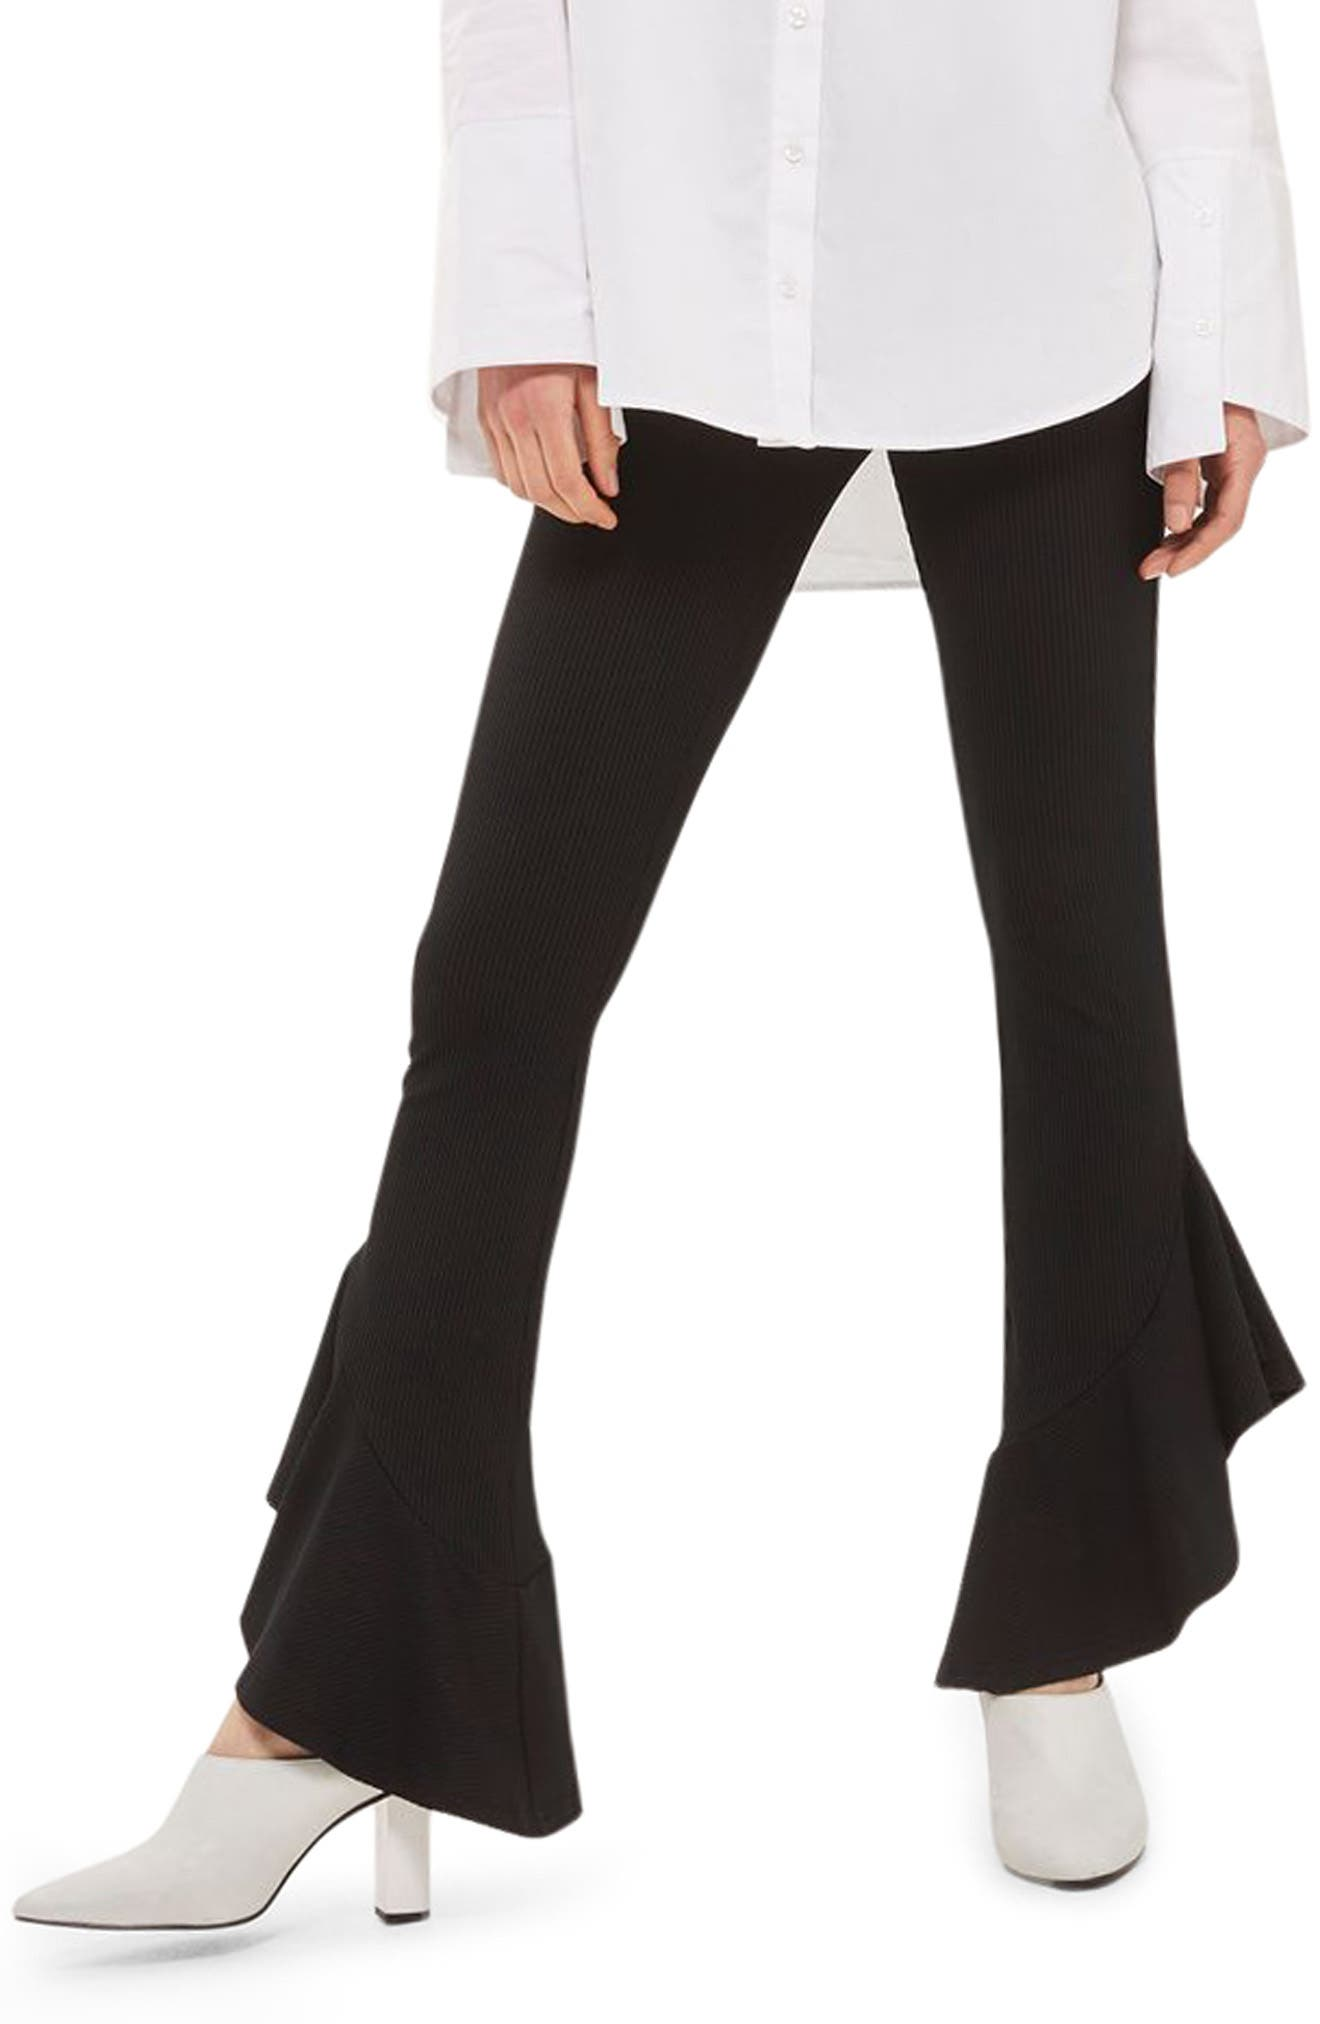 Mermaid Frill Flare Trousers,                         Main,                         color,